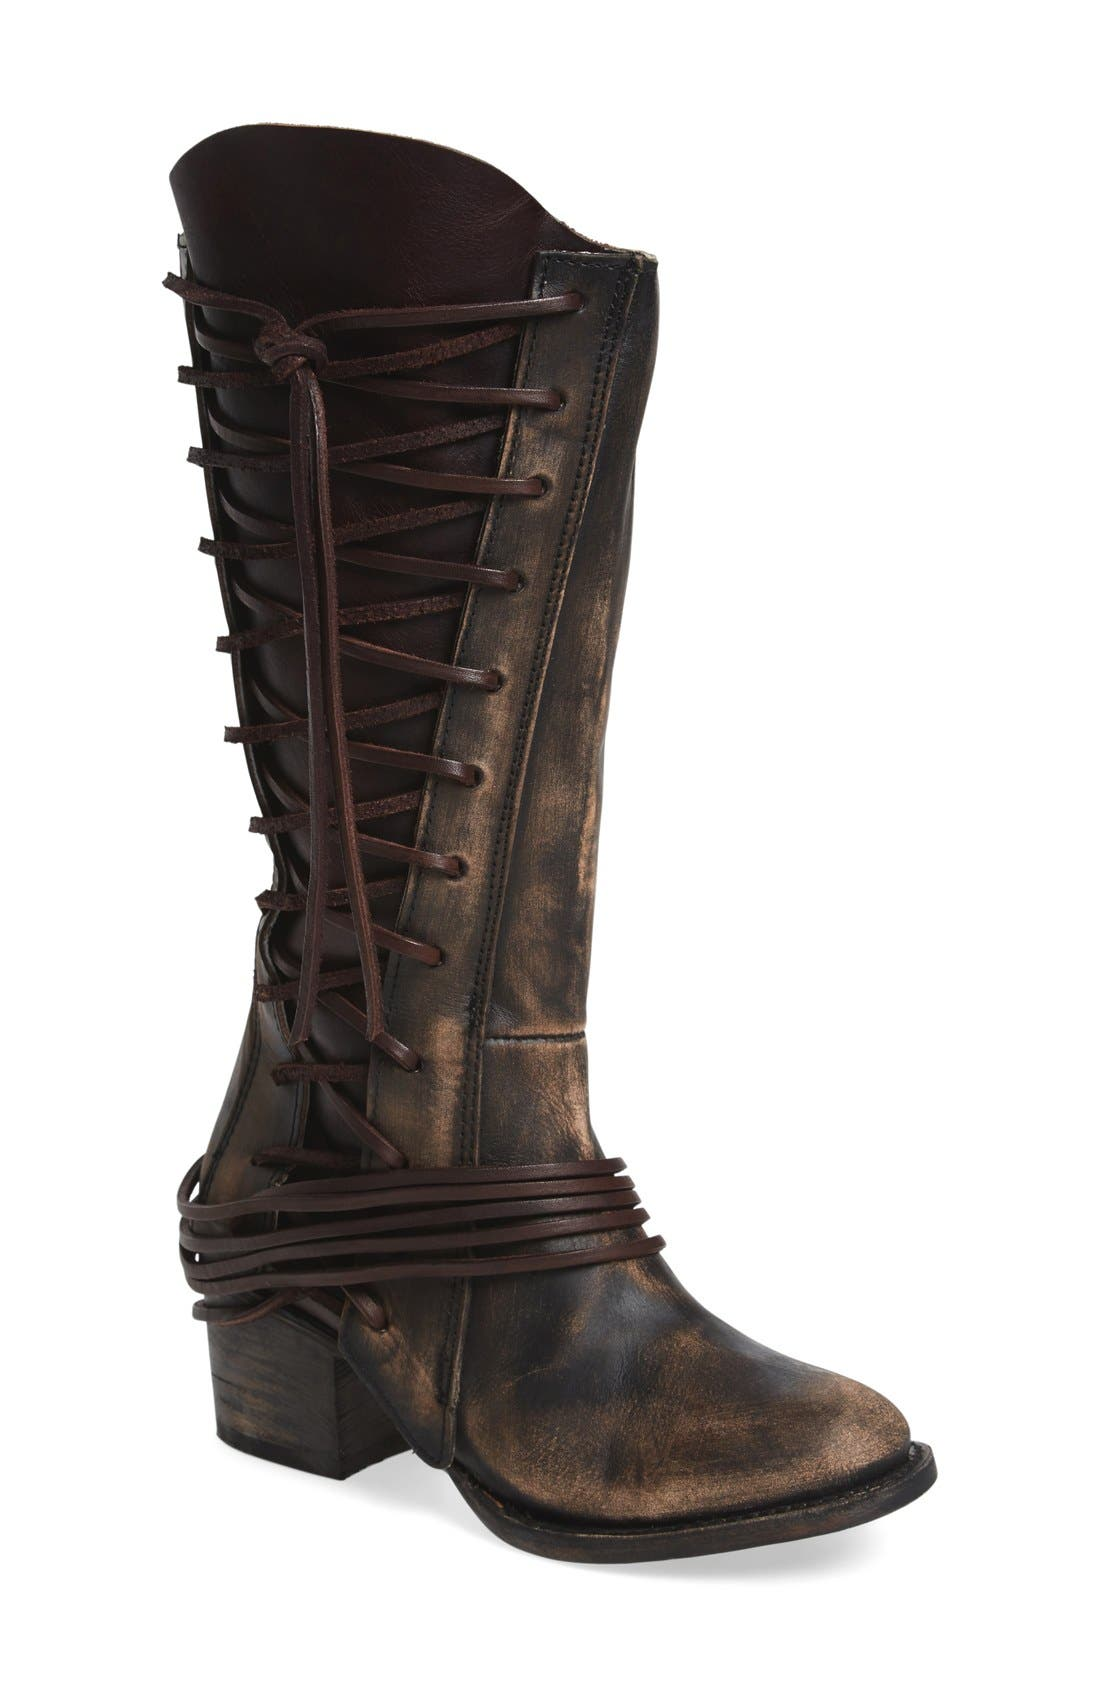 'Cash' Tall Boot,                         Main,                         color, Brown Multi Leather